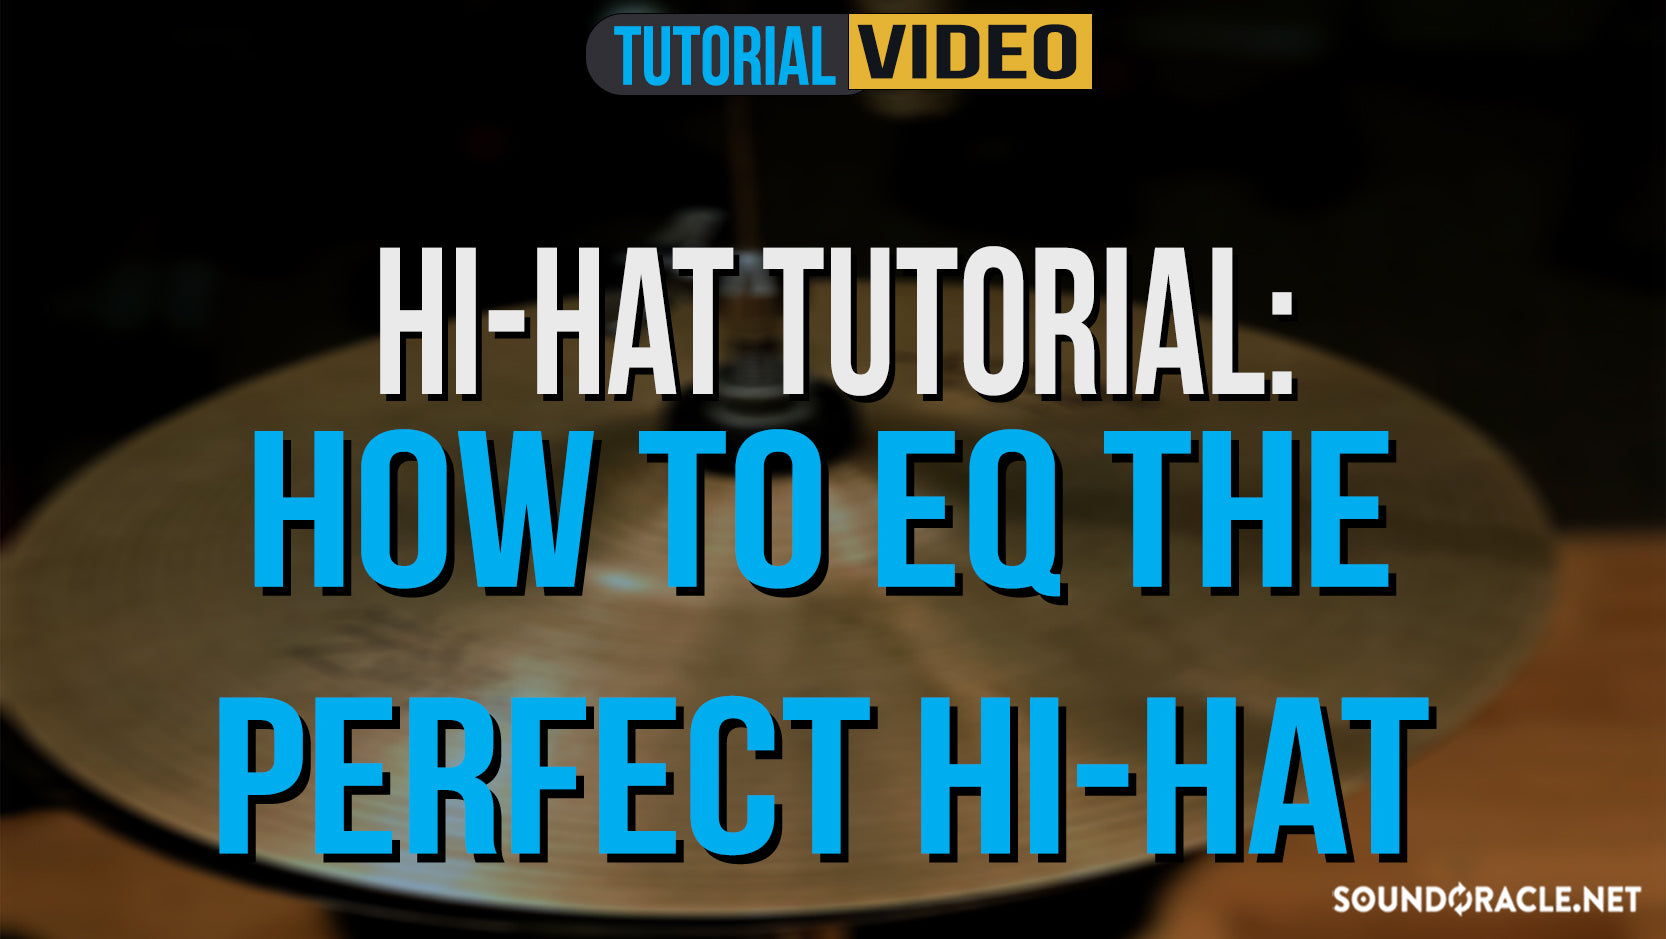 Hi-Hat Tutorial: How to EQ The Perfect Hi-Hat